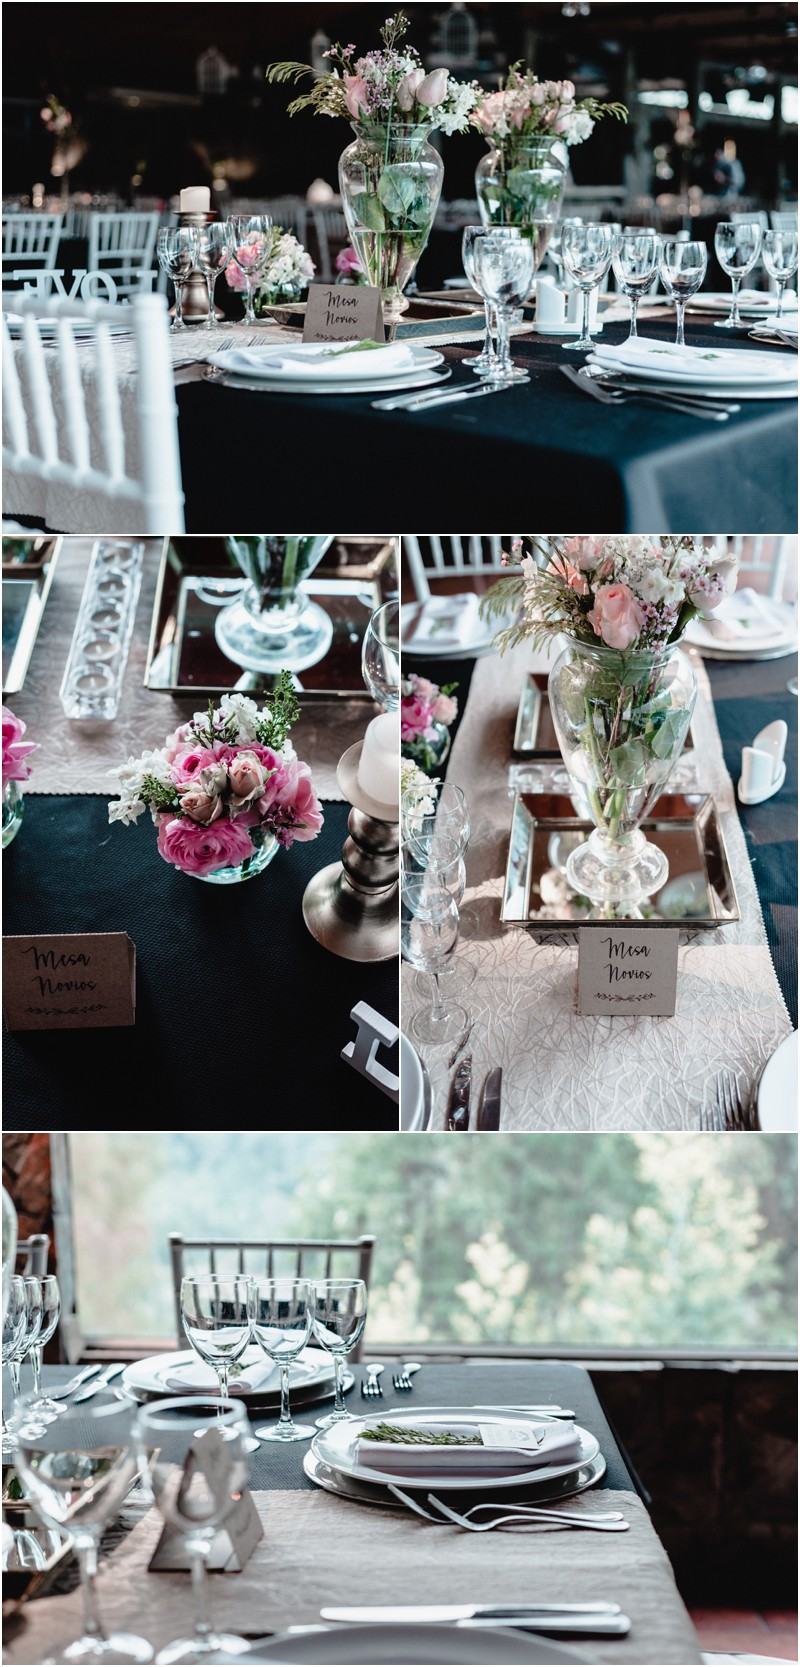 Decoración de Salón Matrimonios – Fotografía de Matrimonio por Ampersand Wedding Films